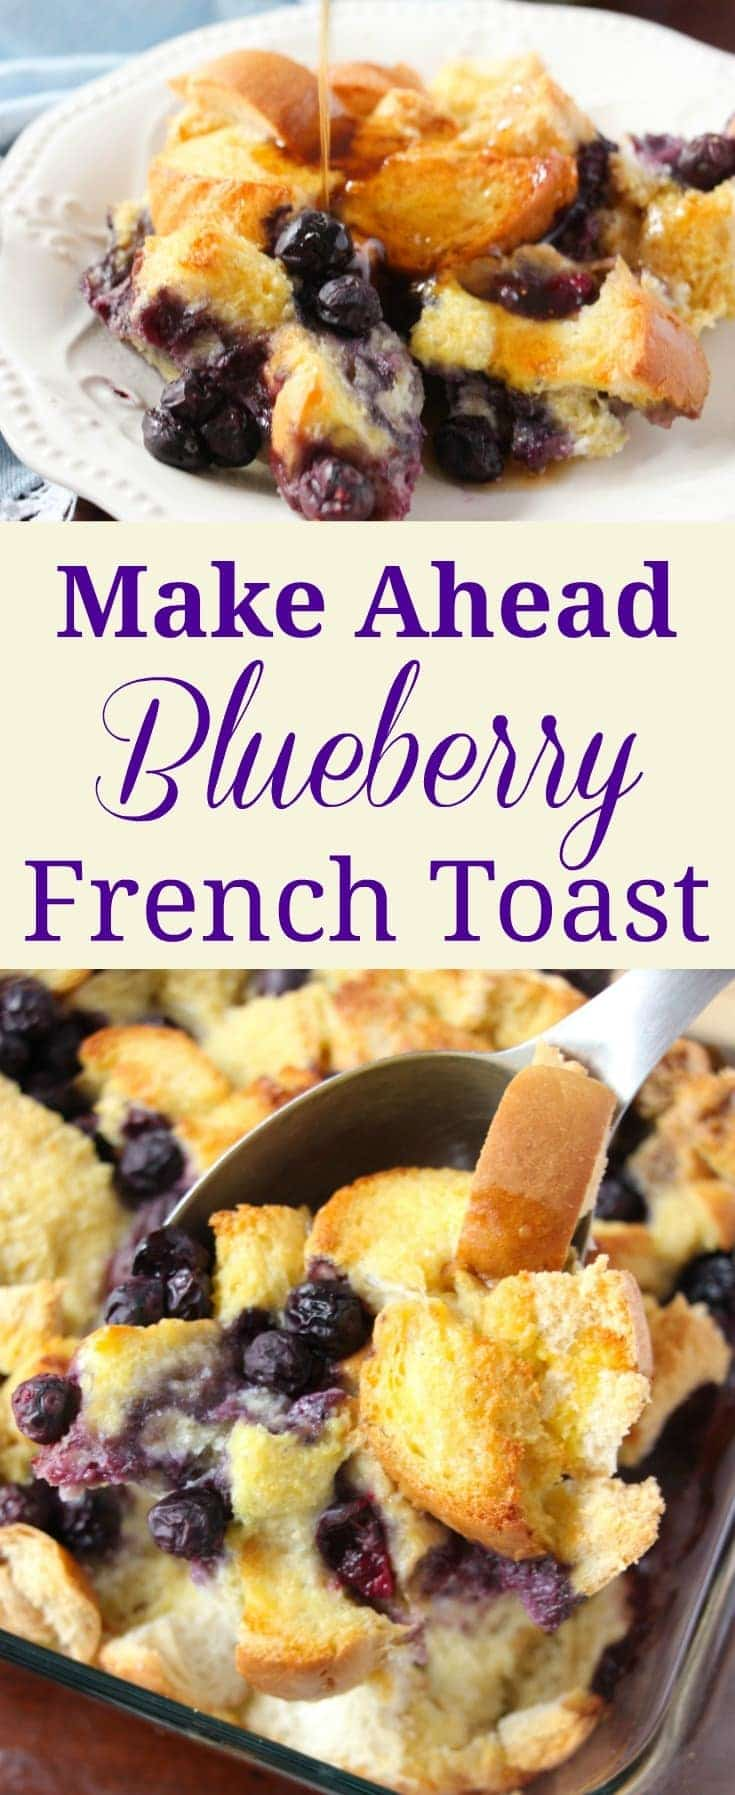 Make ahead breakfast casseroles make it easy to get a satisfying breakfast on the table. This Blueberry French Toast version is a family favorite. #breakfast #casserole #blueberries #frenchtoast via @wondermomwannab